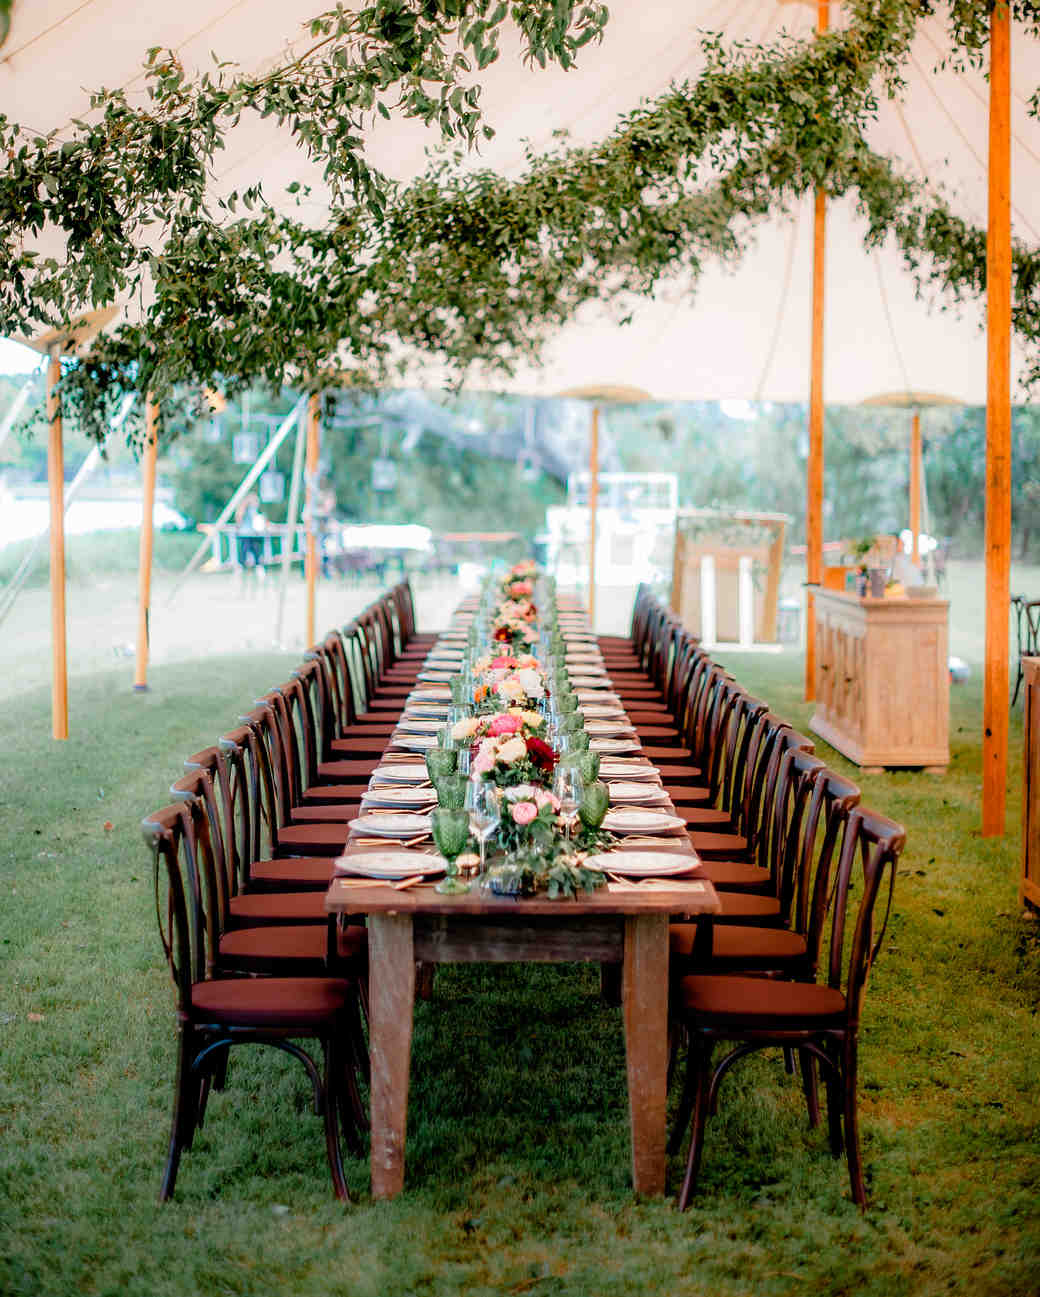 7 Barn Wedding Decoration Ideas For A Spring Wedding: 42 Stunning Banquet Tables For Your Reception